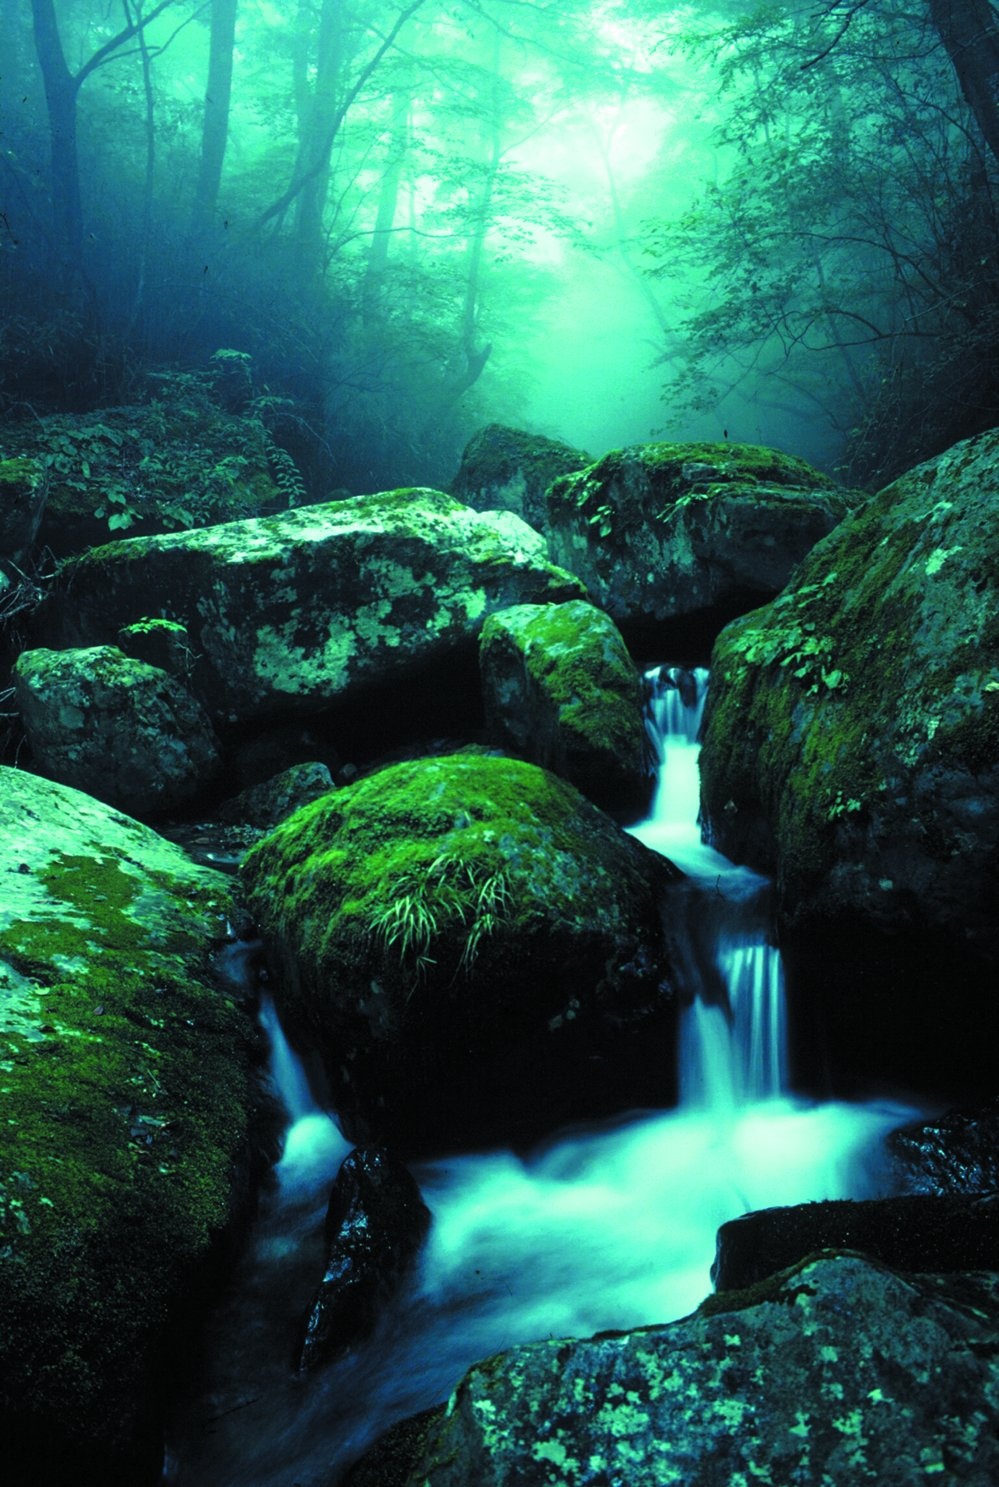 Name: mountain pictures mountain stream wfl1.jpg Size:303.76 kB Resolution:999×1487